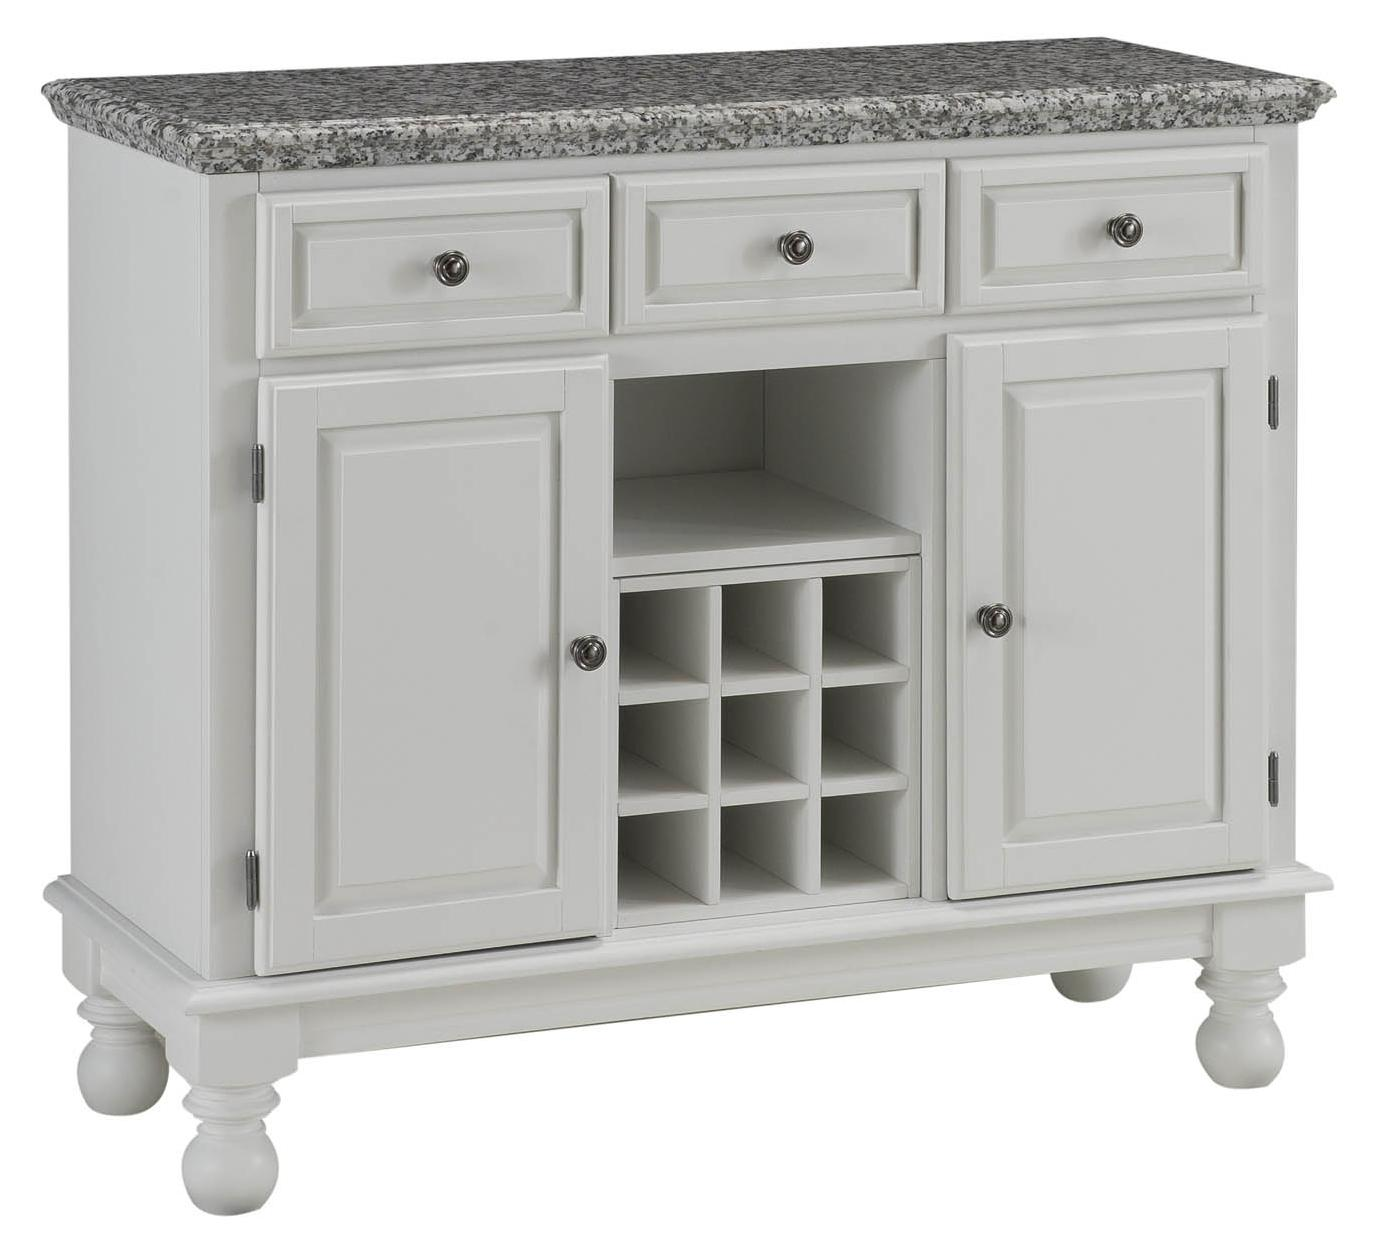 Superb Premier Buffet Of Buffets Server With Grey Granite Top By Home Styles